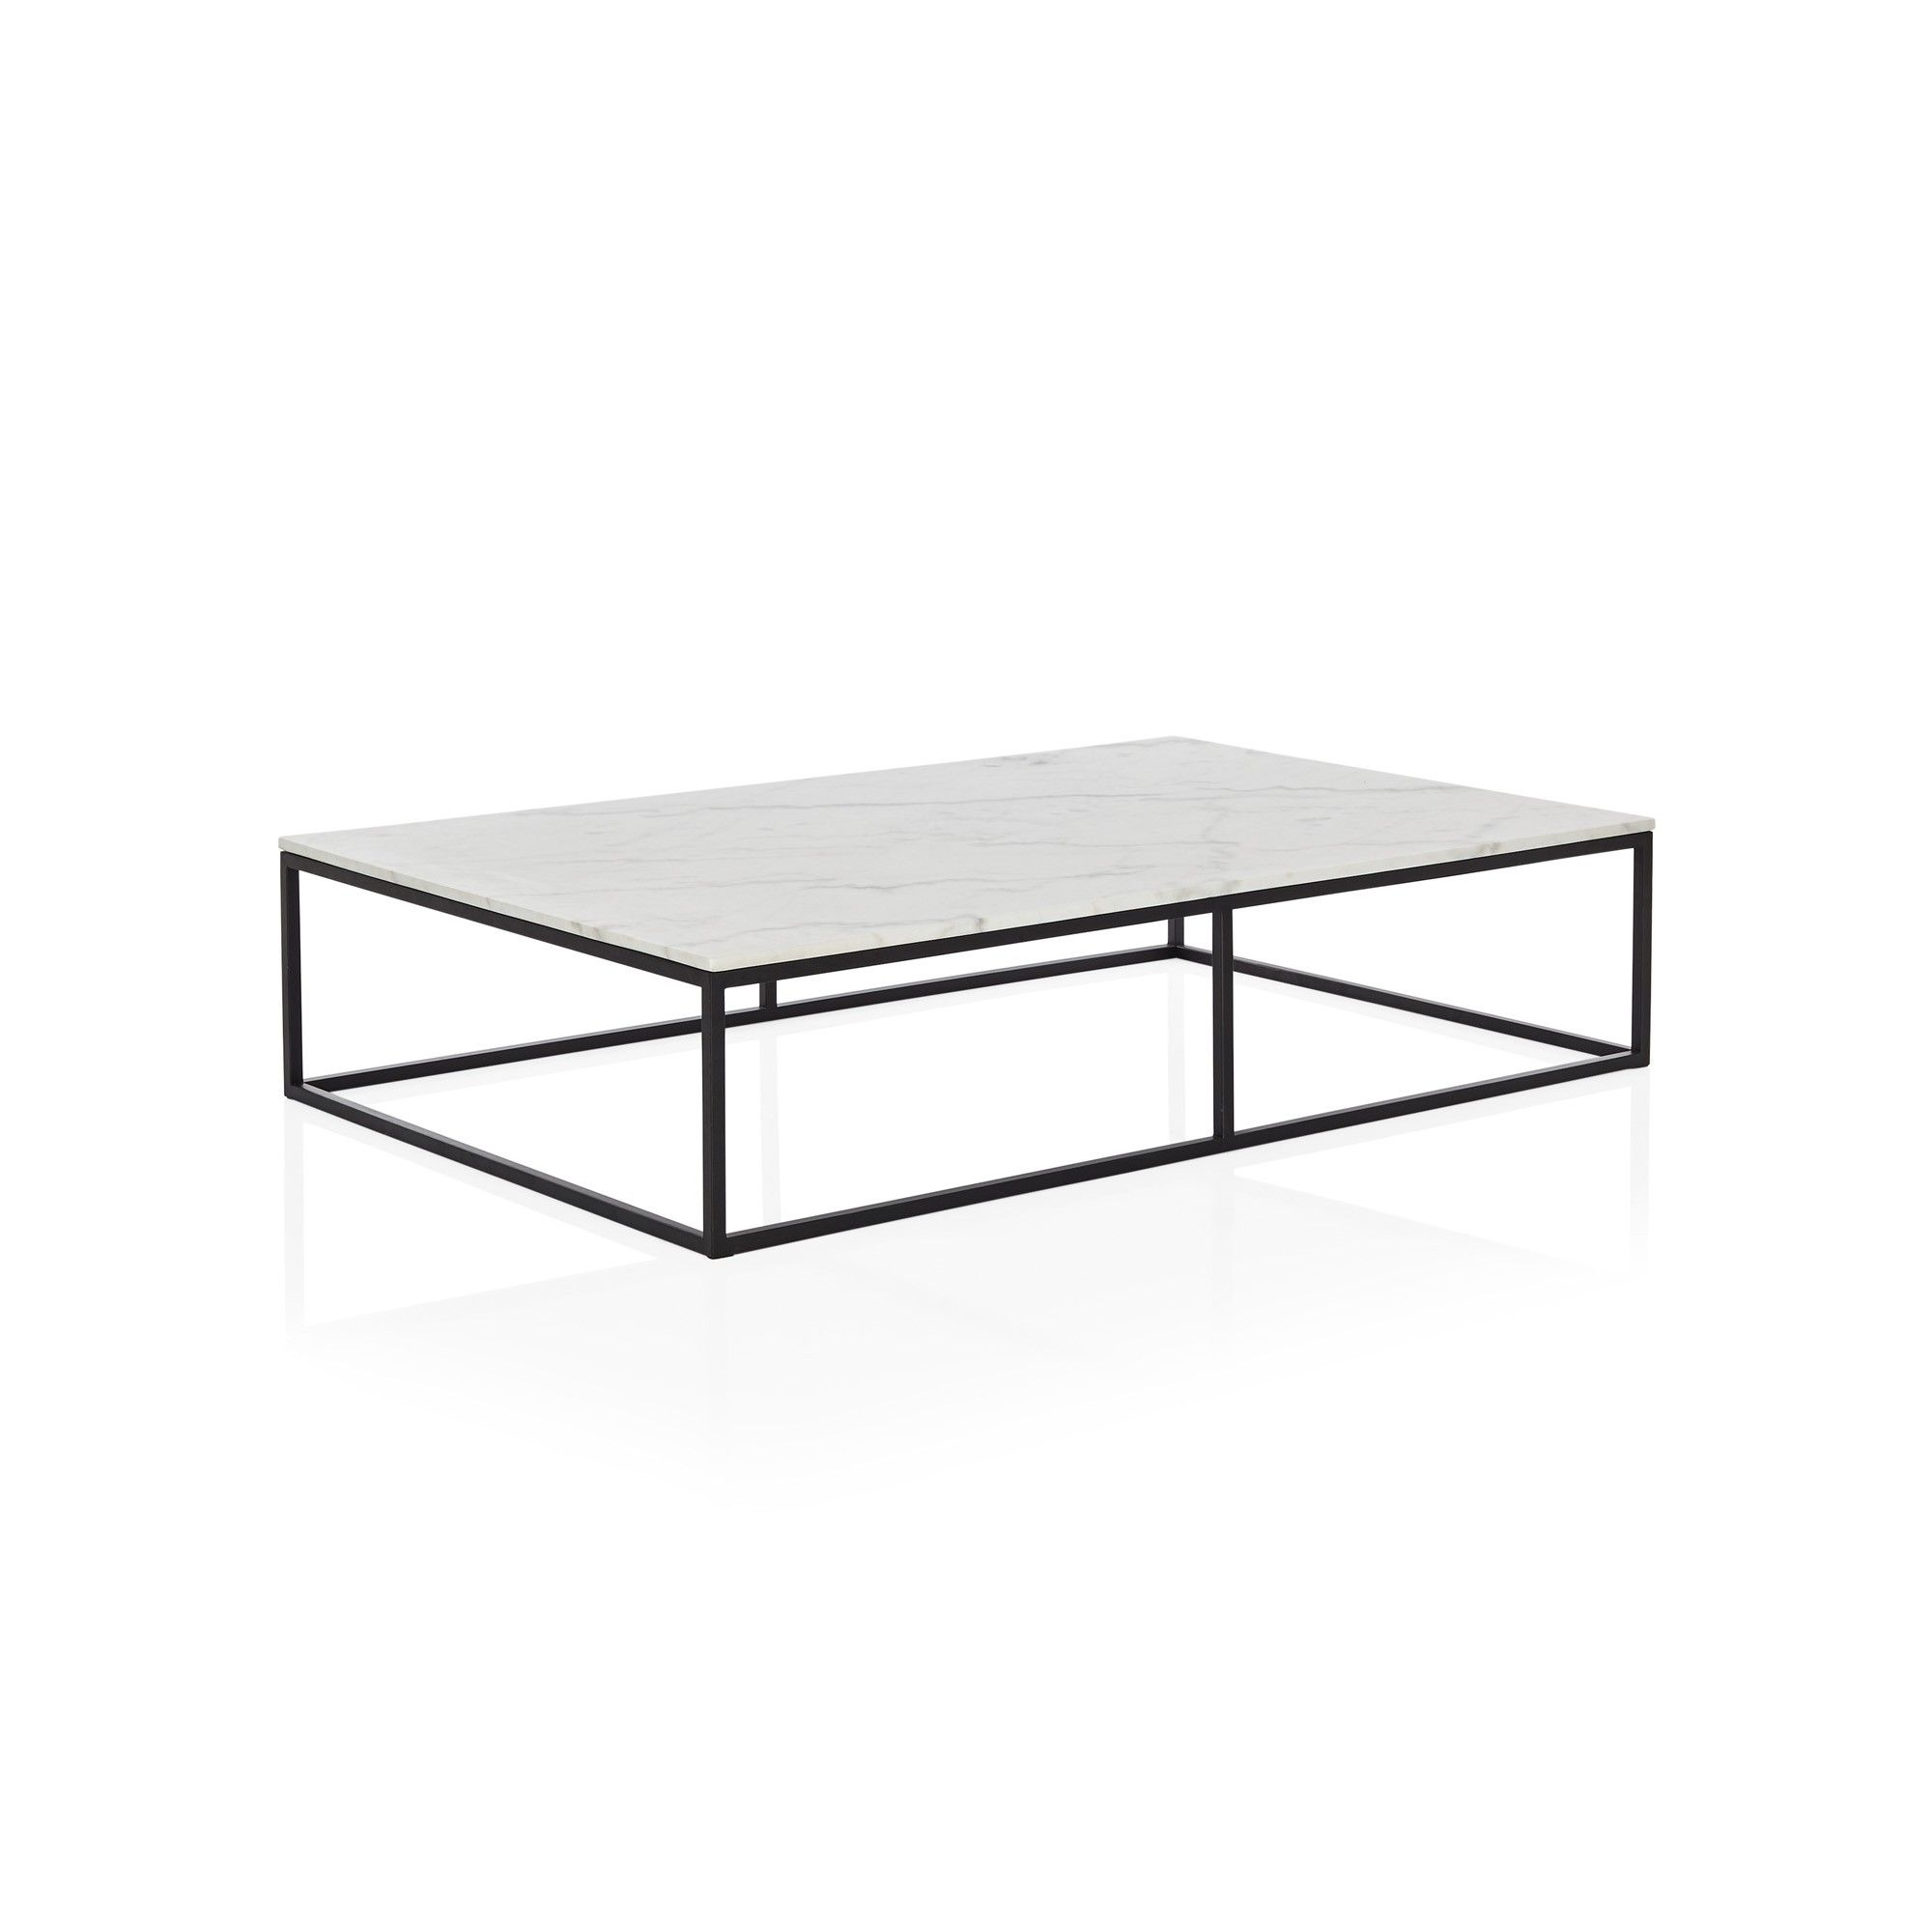 Soho Marble Coffee Table Coffee Table Marble Coffee Table Table [ 2000 x 2000 Pixel ]